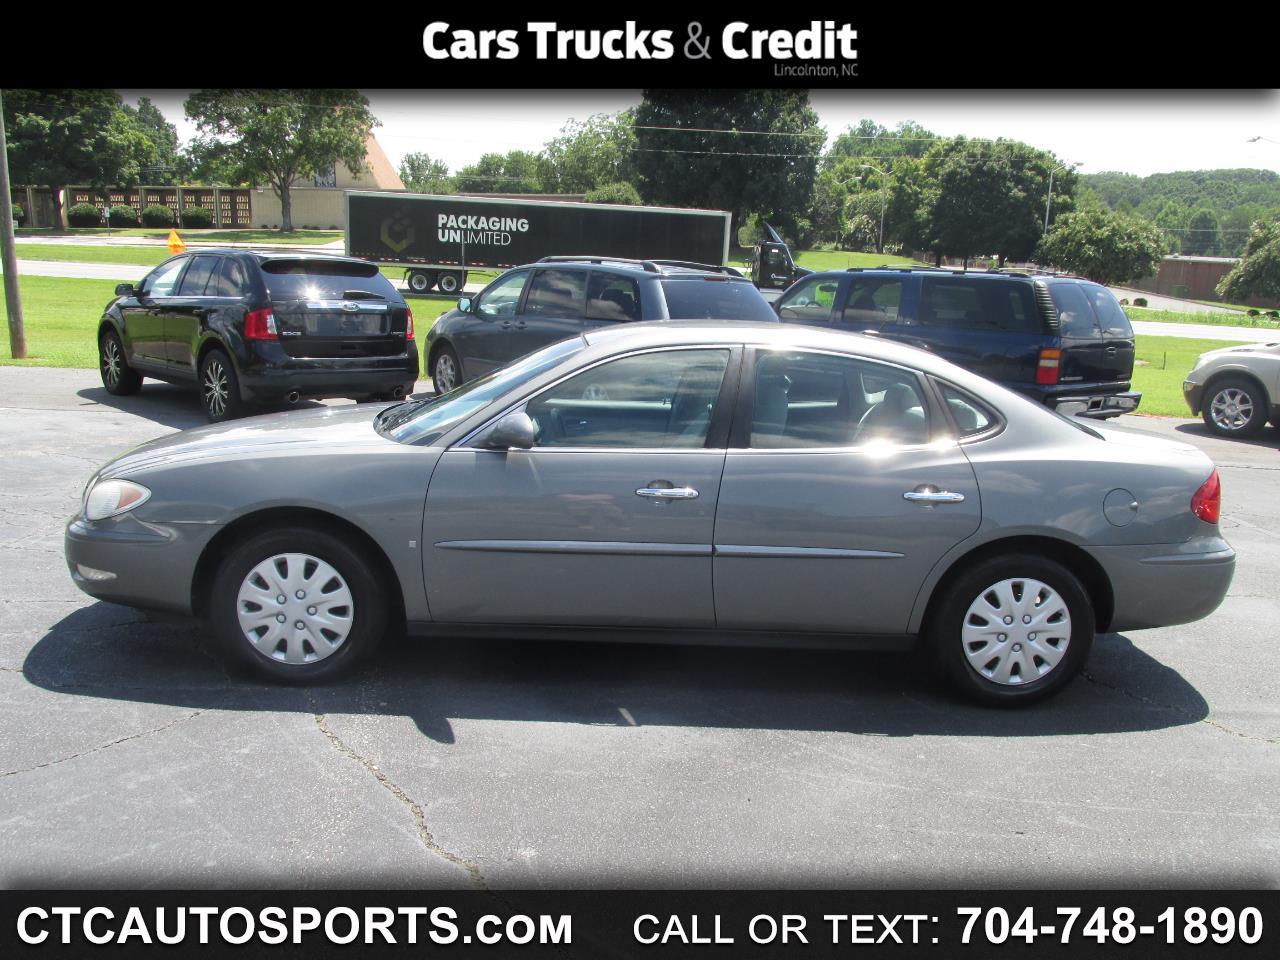 Buick LaCrosse 4dr Sdn CX 2007